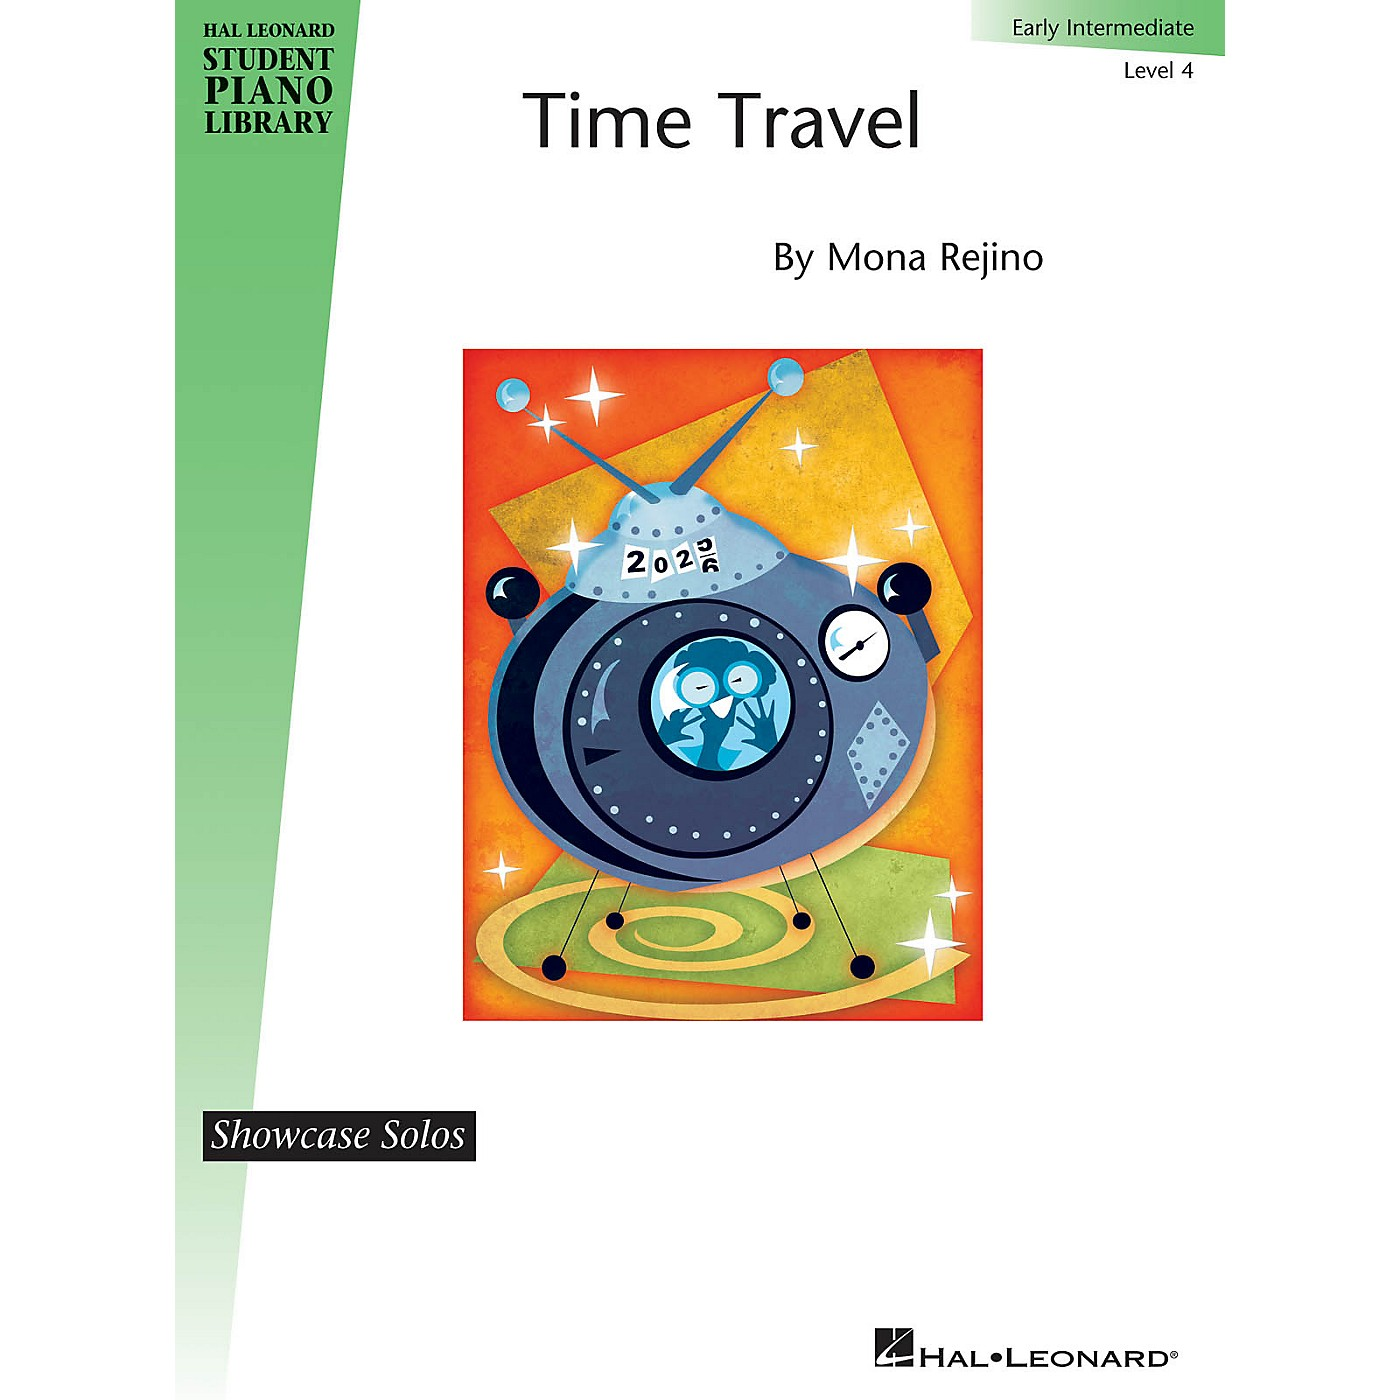 Hal Leonard Time Travel Piano Library Series by Mona Rejino (Level Early Inter) thumbnail